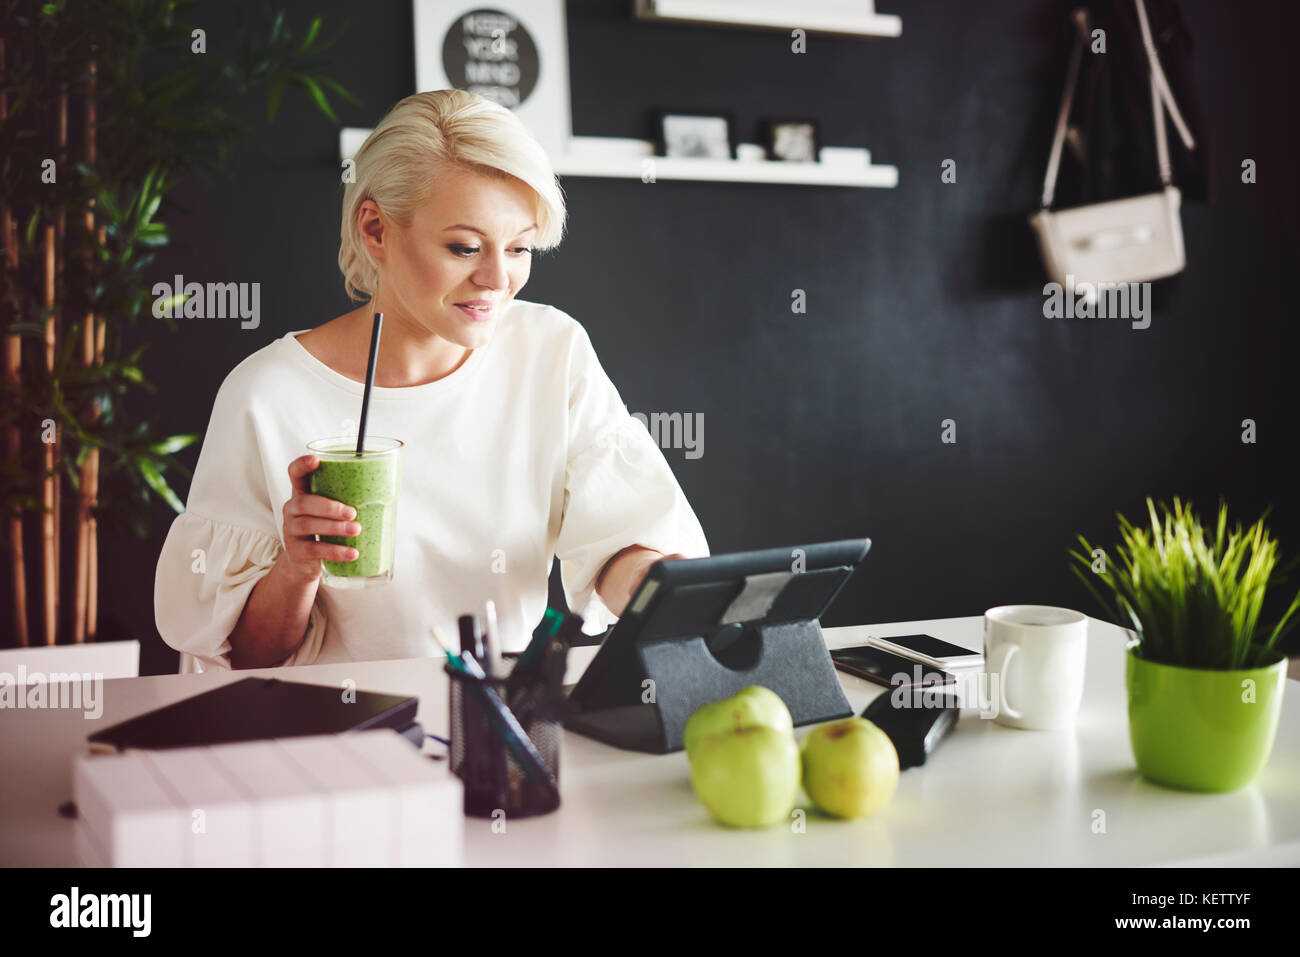 Woman with smoothie using a digital tablet at her desk - Stock Image